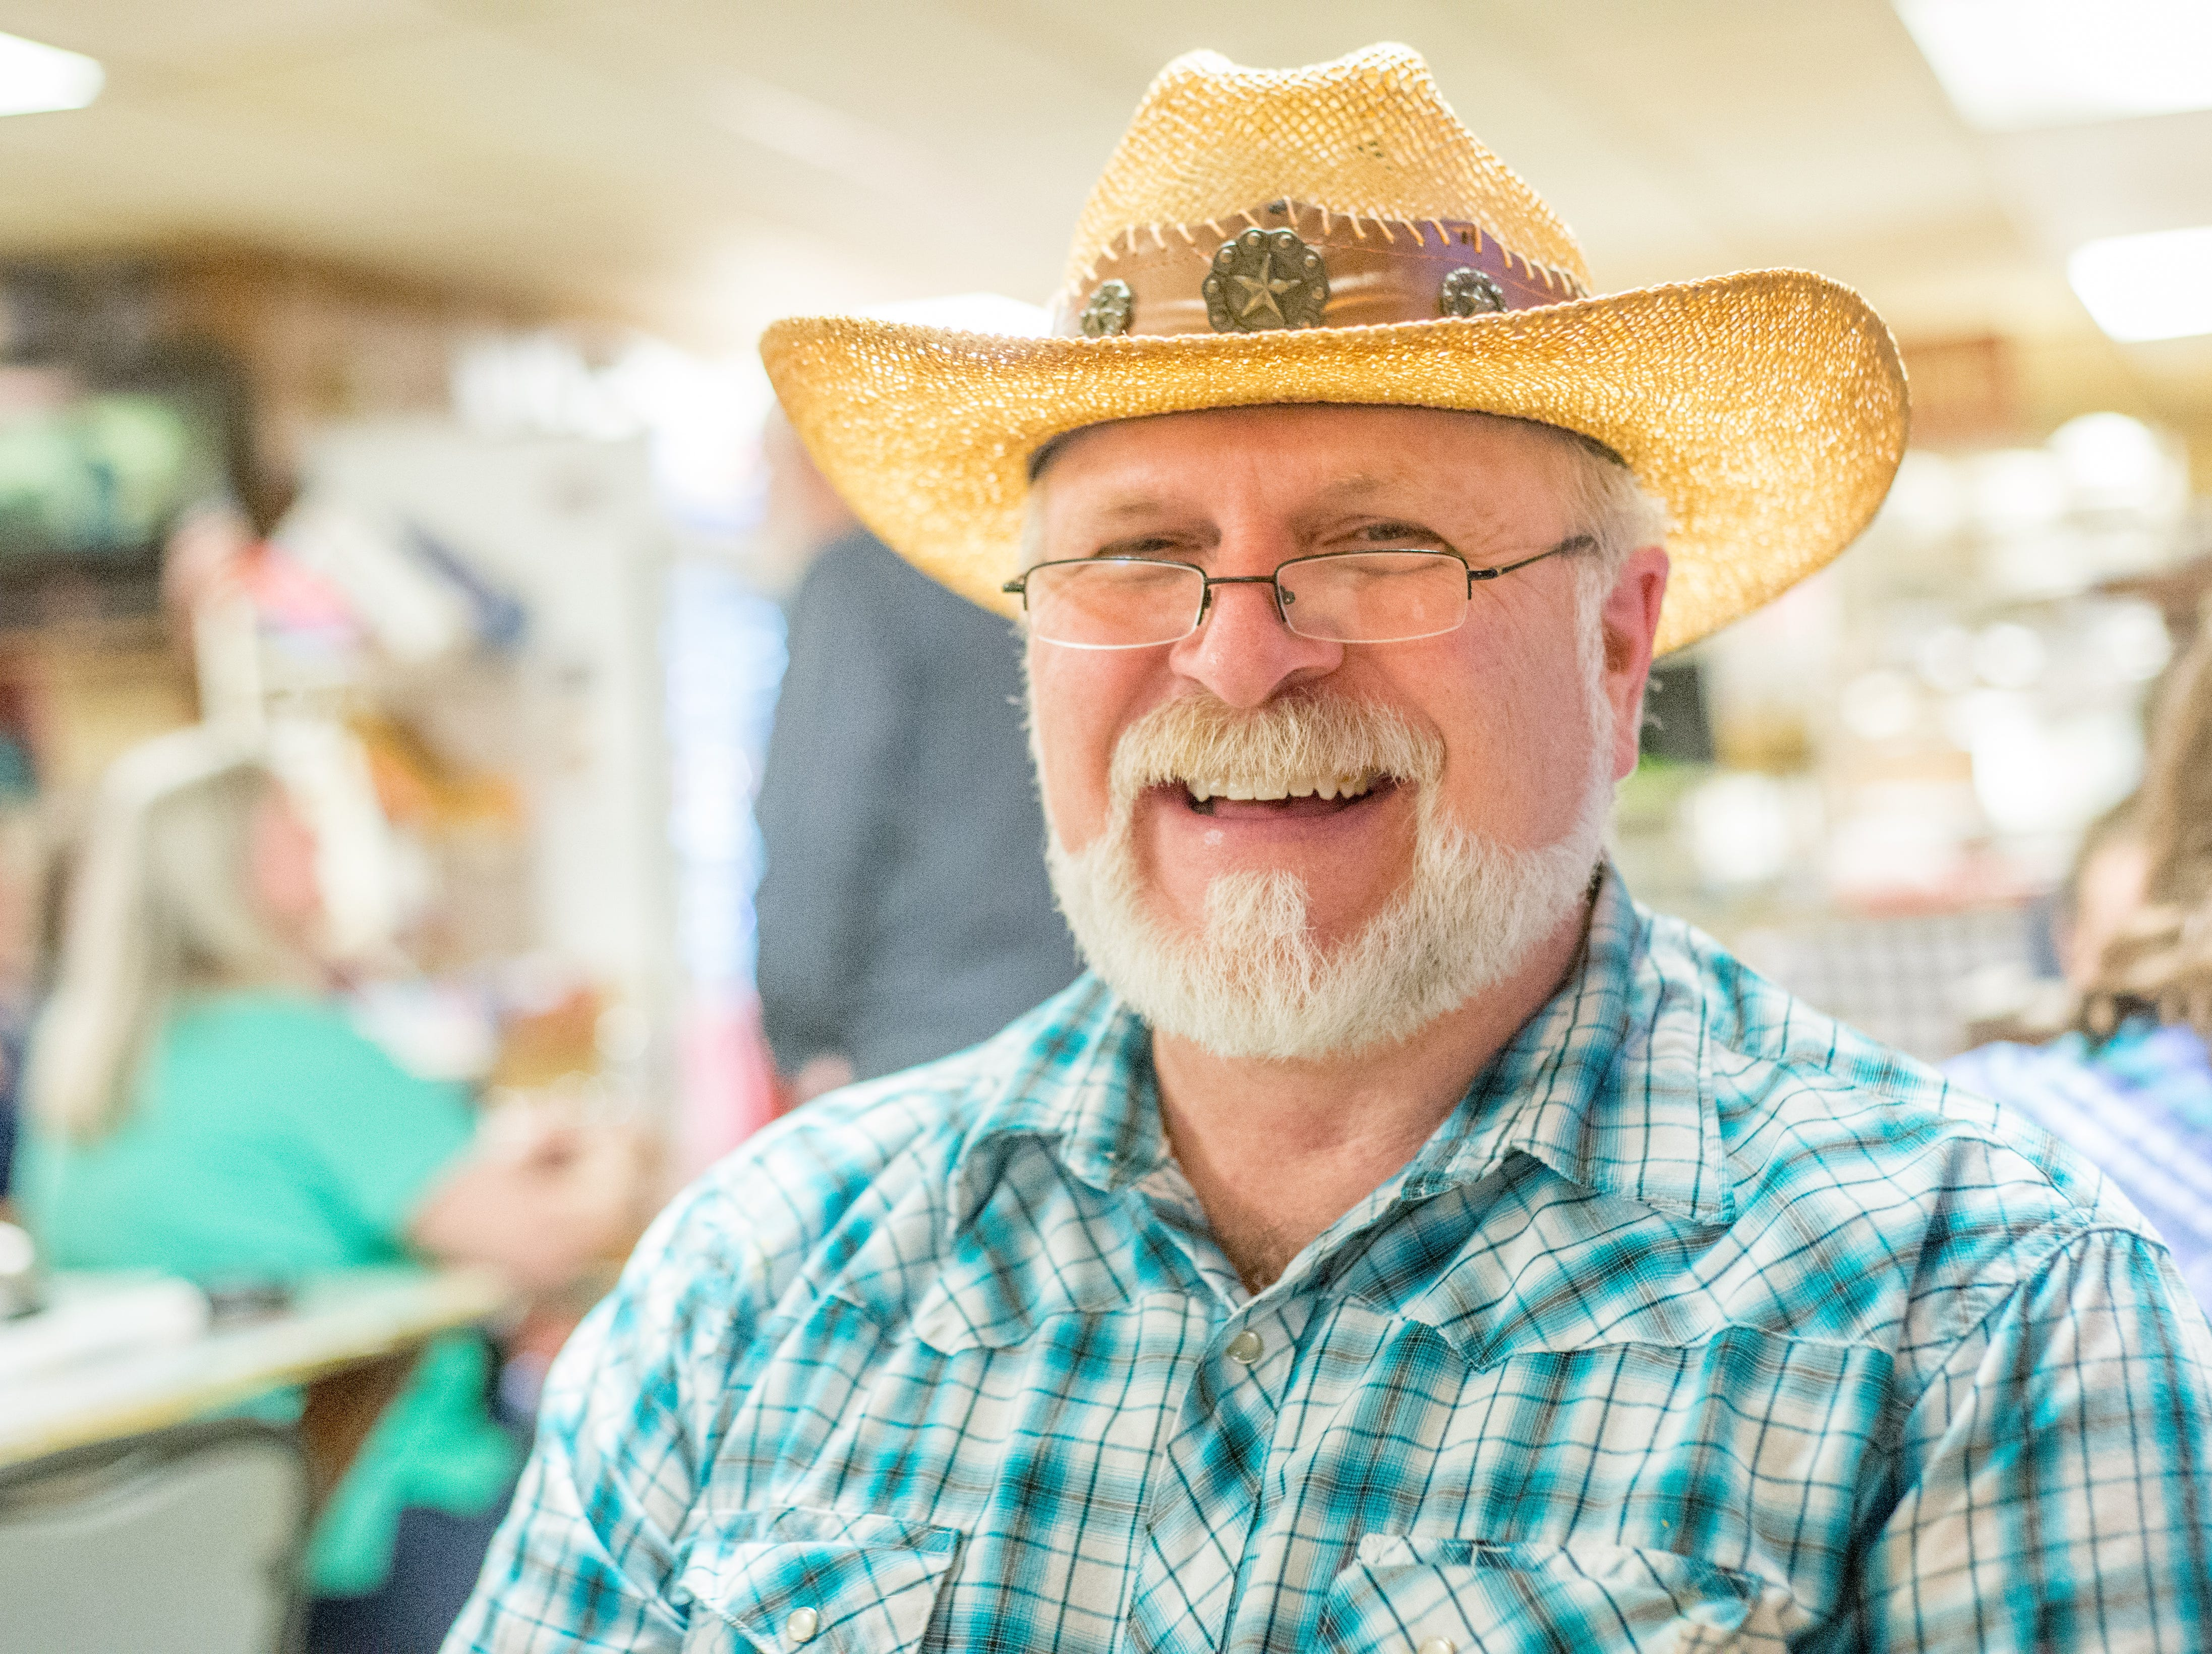 Johnny G. Moore enjoys time at the Long Hollow Jamboree in Goodlettsville on Saturday, April 7.